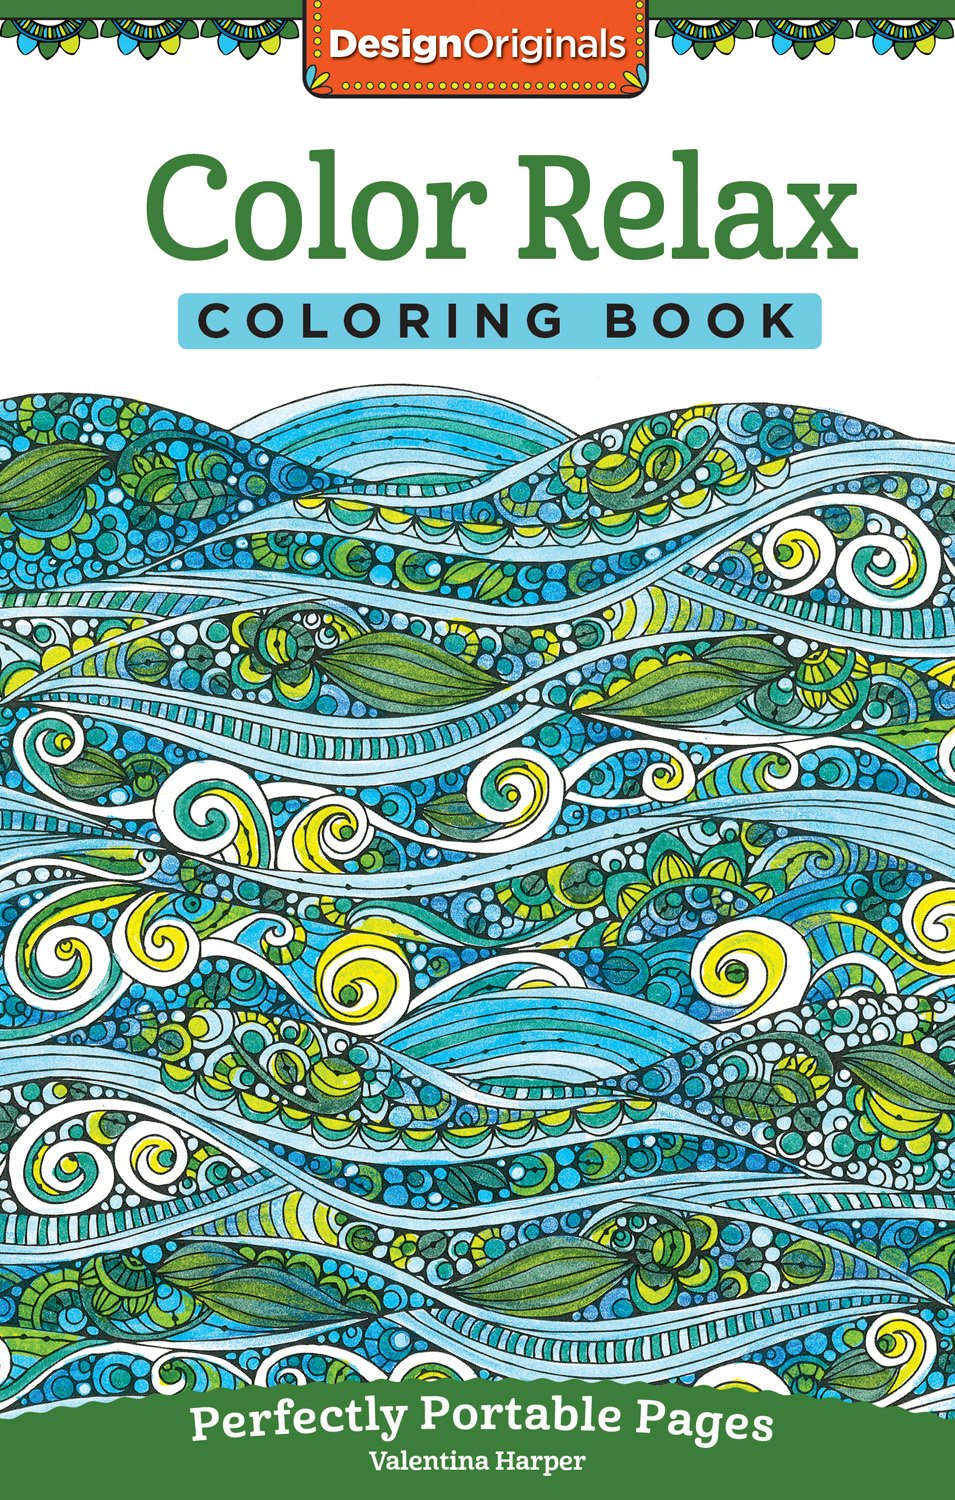 Color Relax Coloring Book Go product image